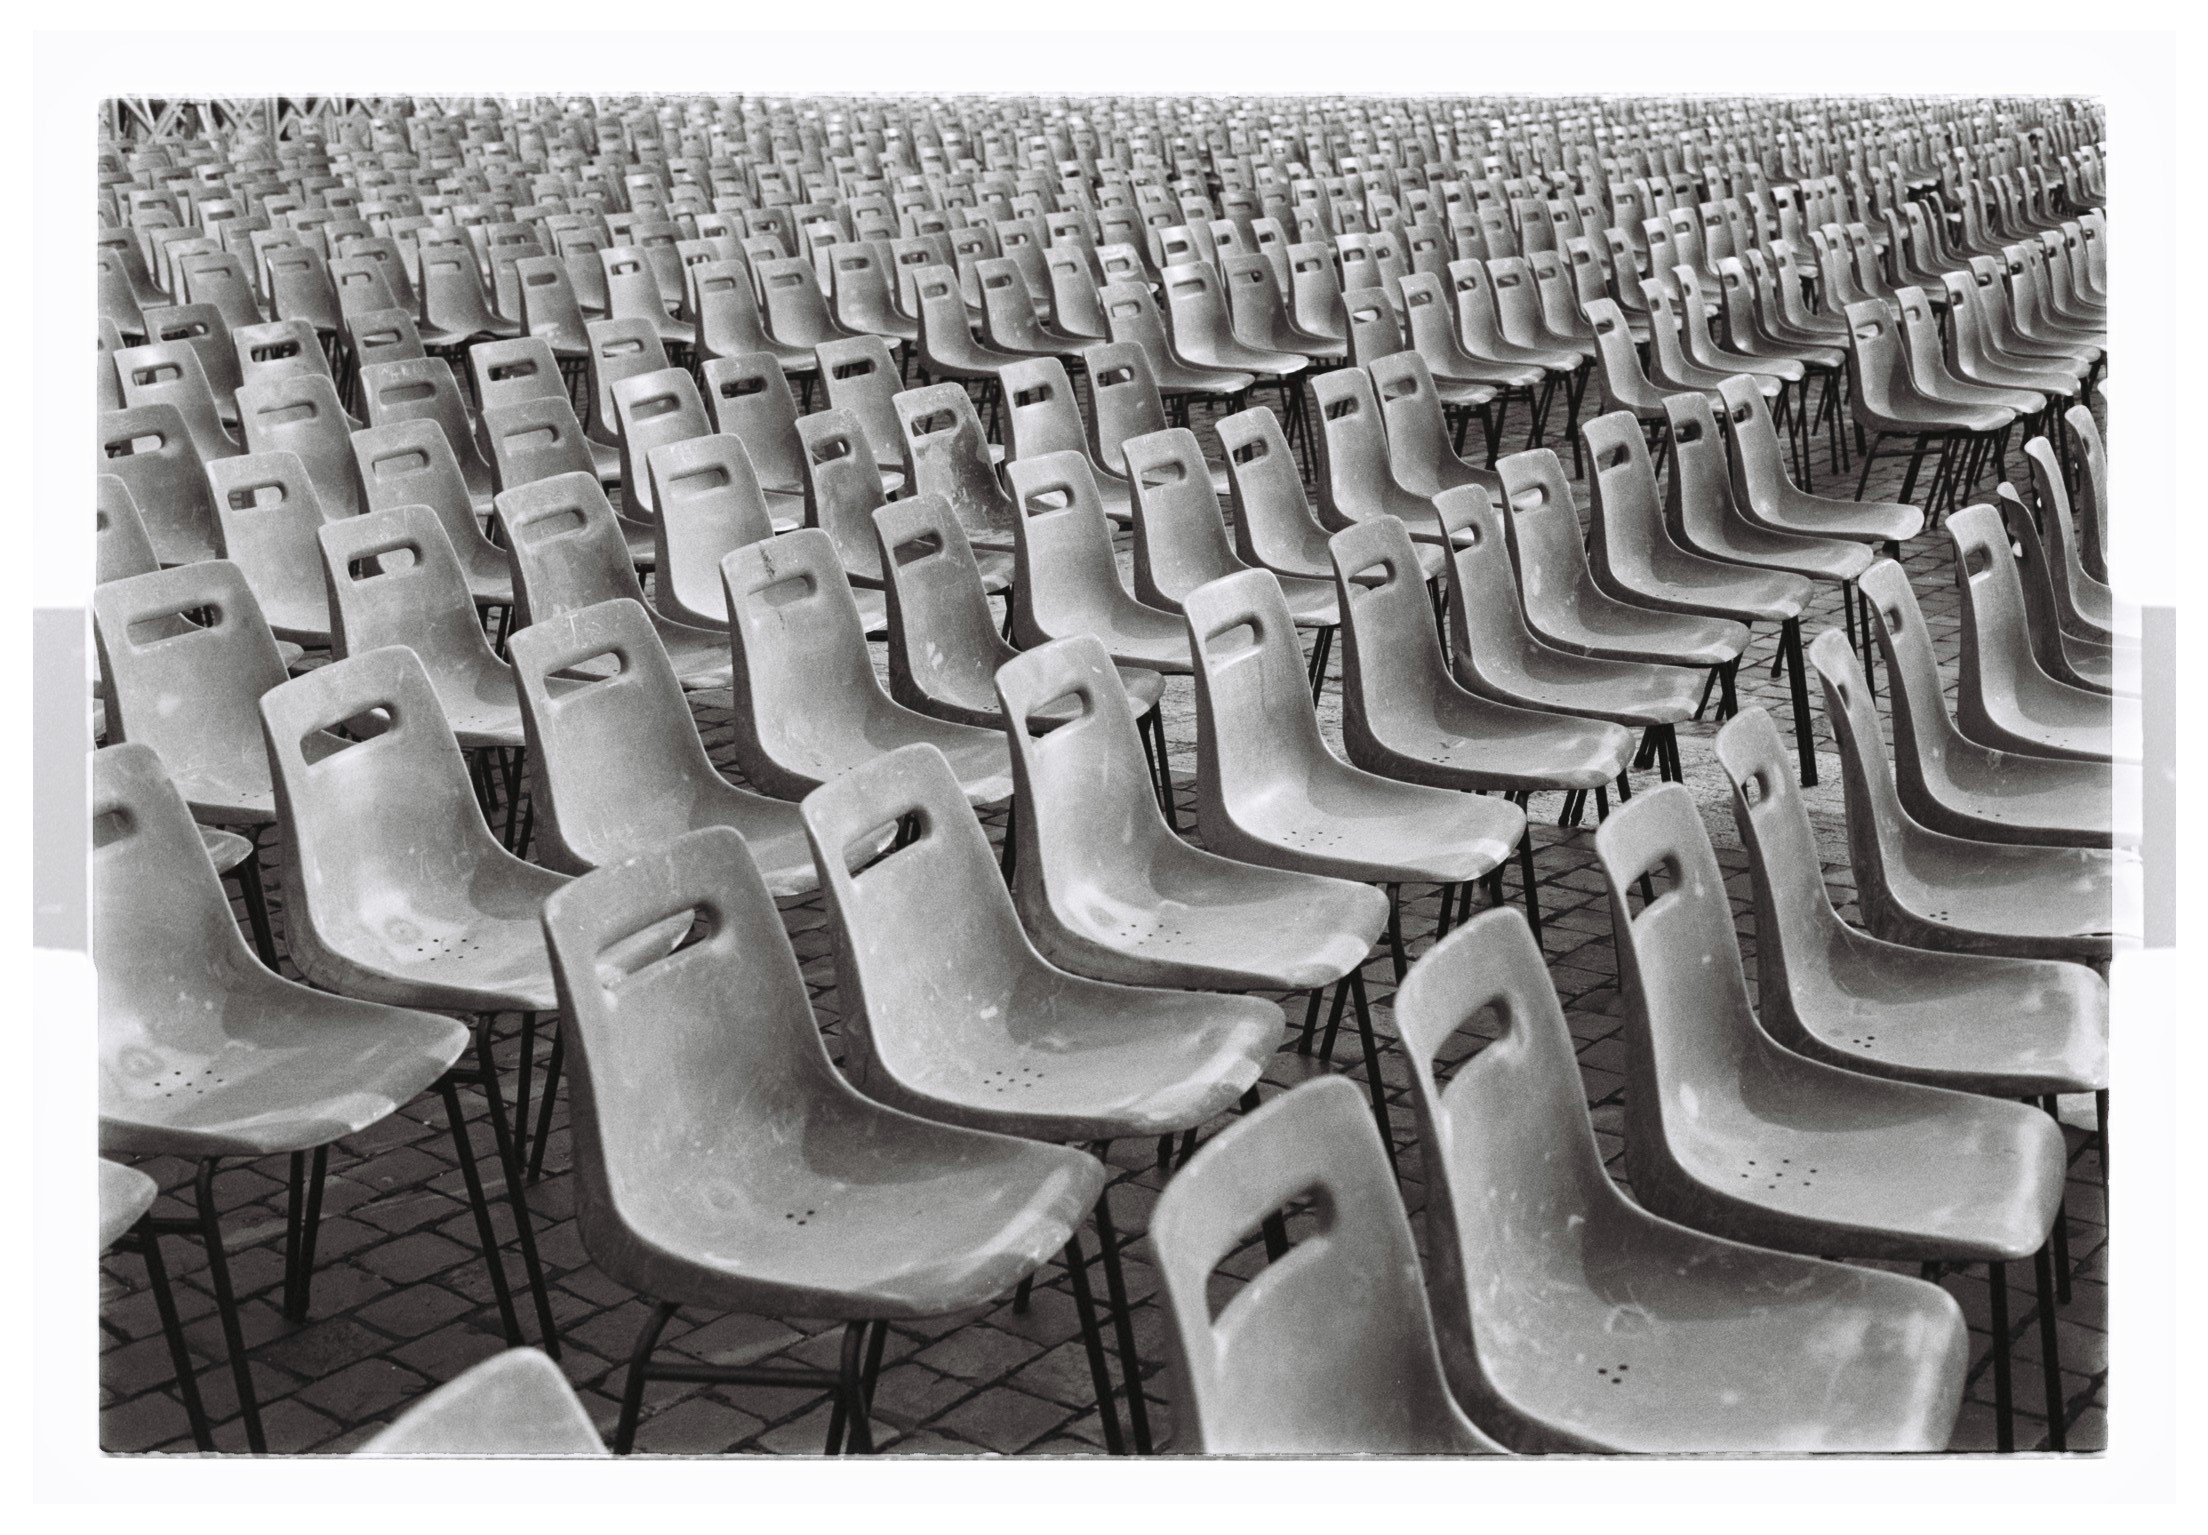 Power of Belief Chairs in Saint Peter's Square. Vatican, Italy 2016  Kodak TMAX Film